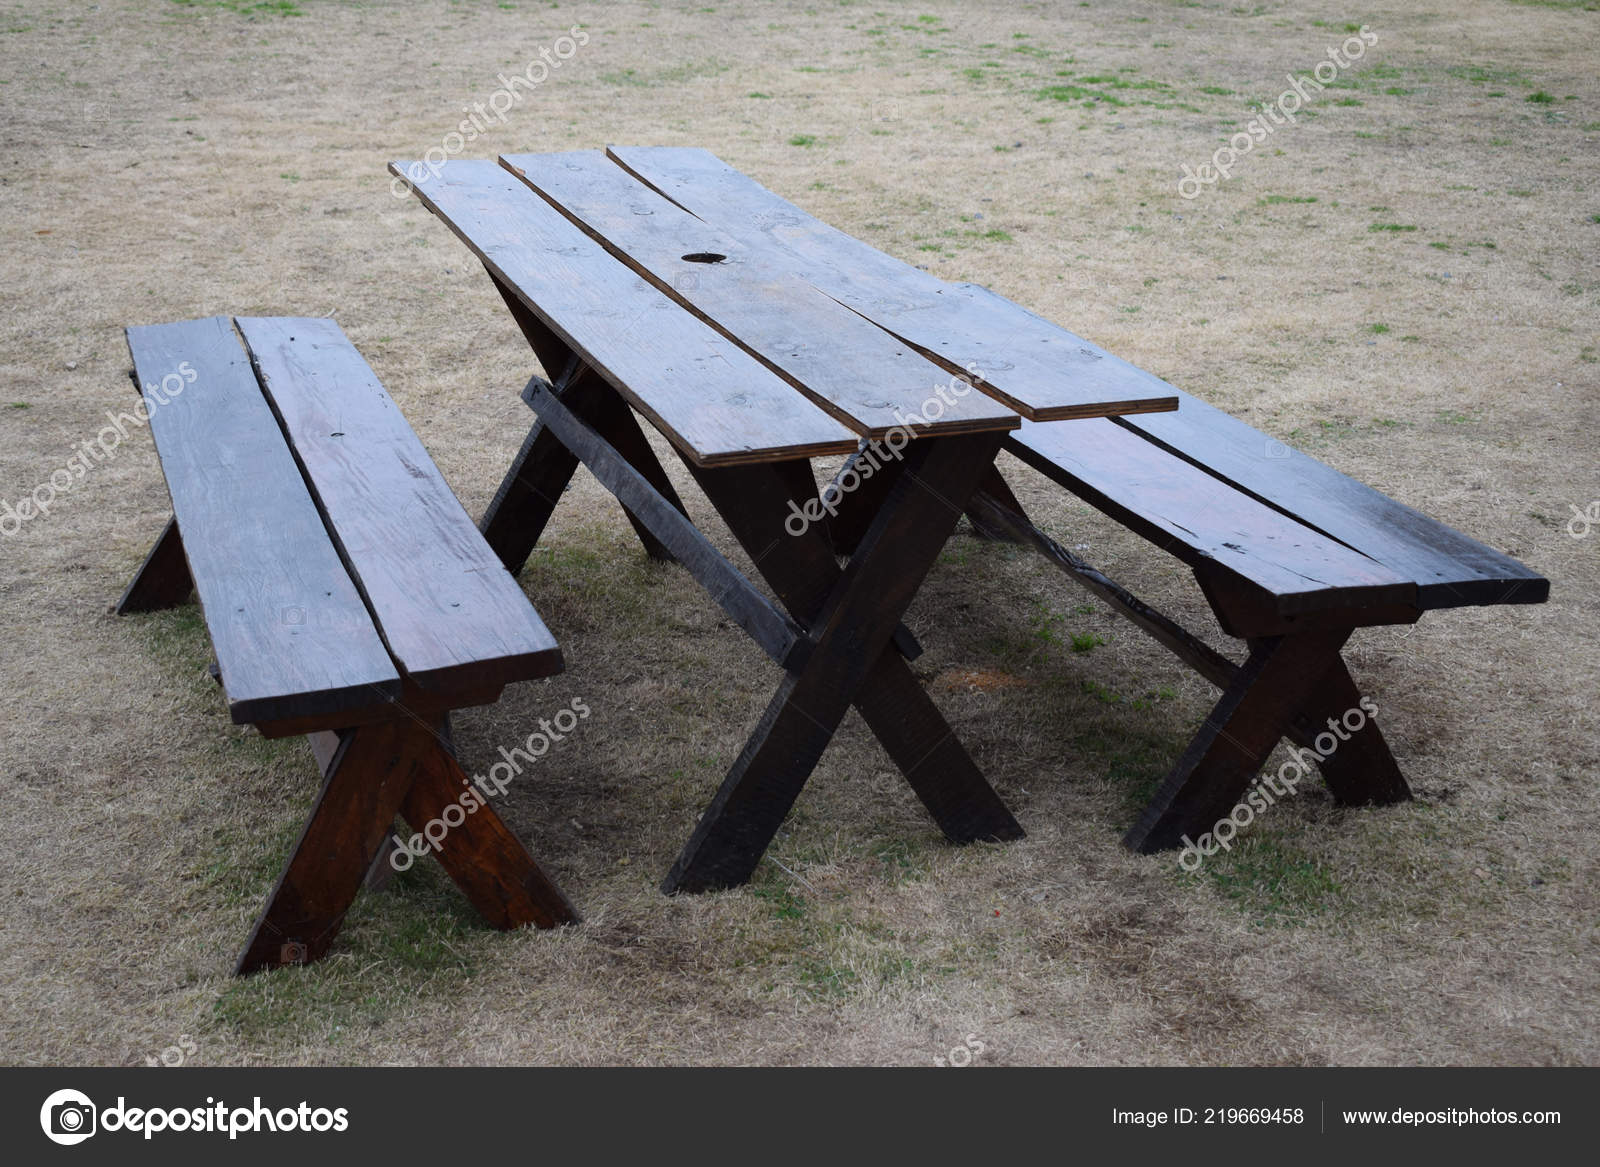 Wooden Bench Table Wooden Bench Table Street Restaurant Stock Photo Yofoto 219669458